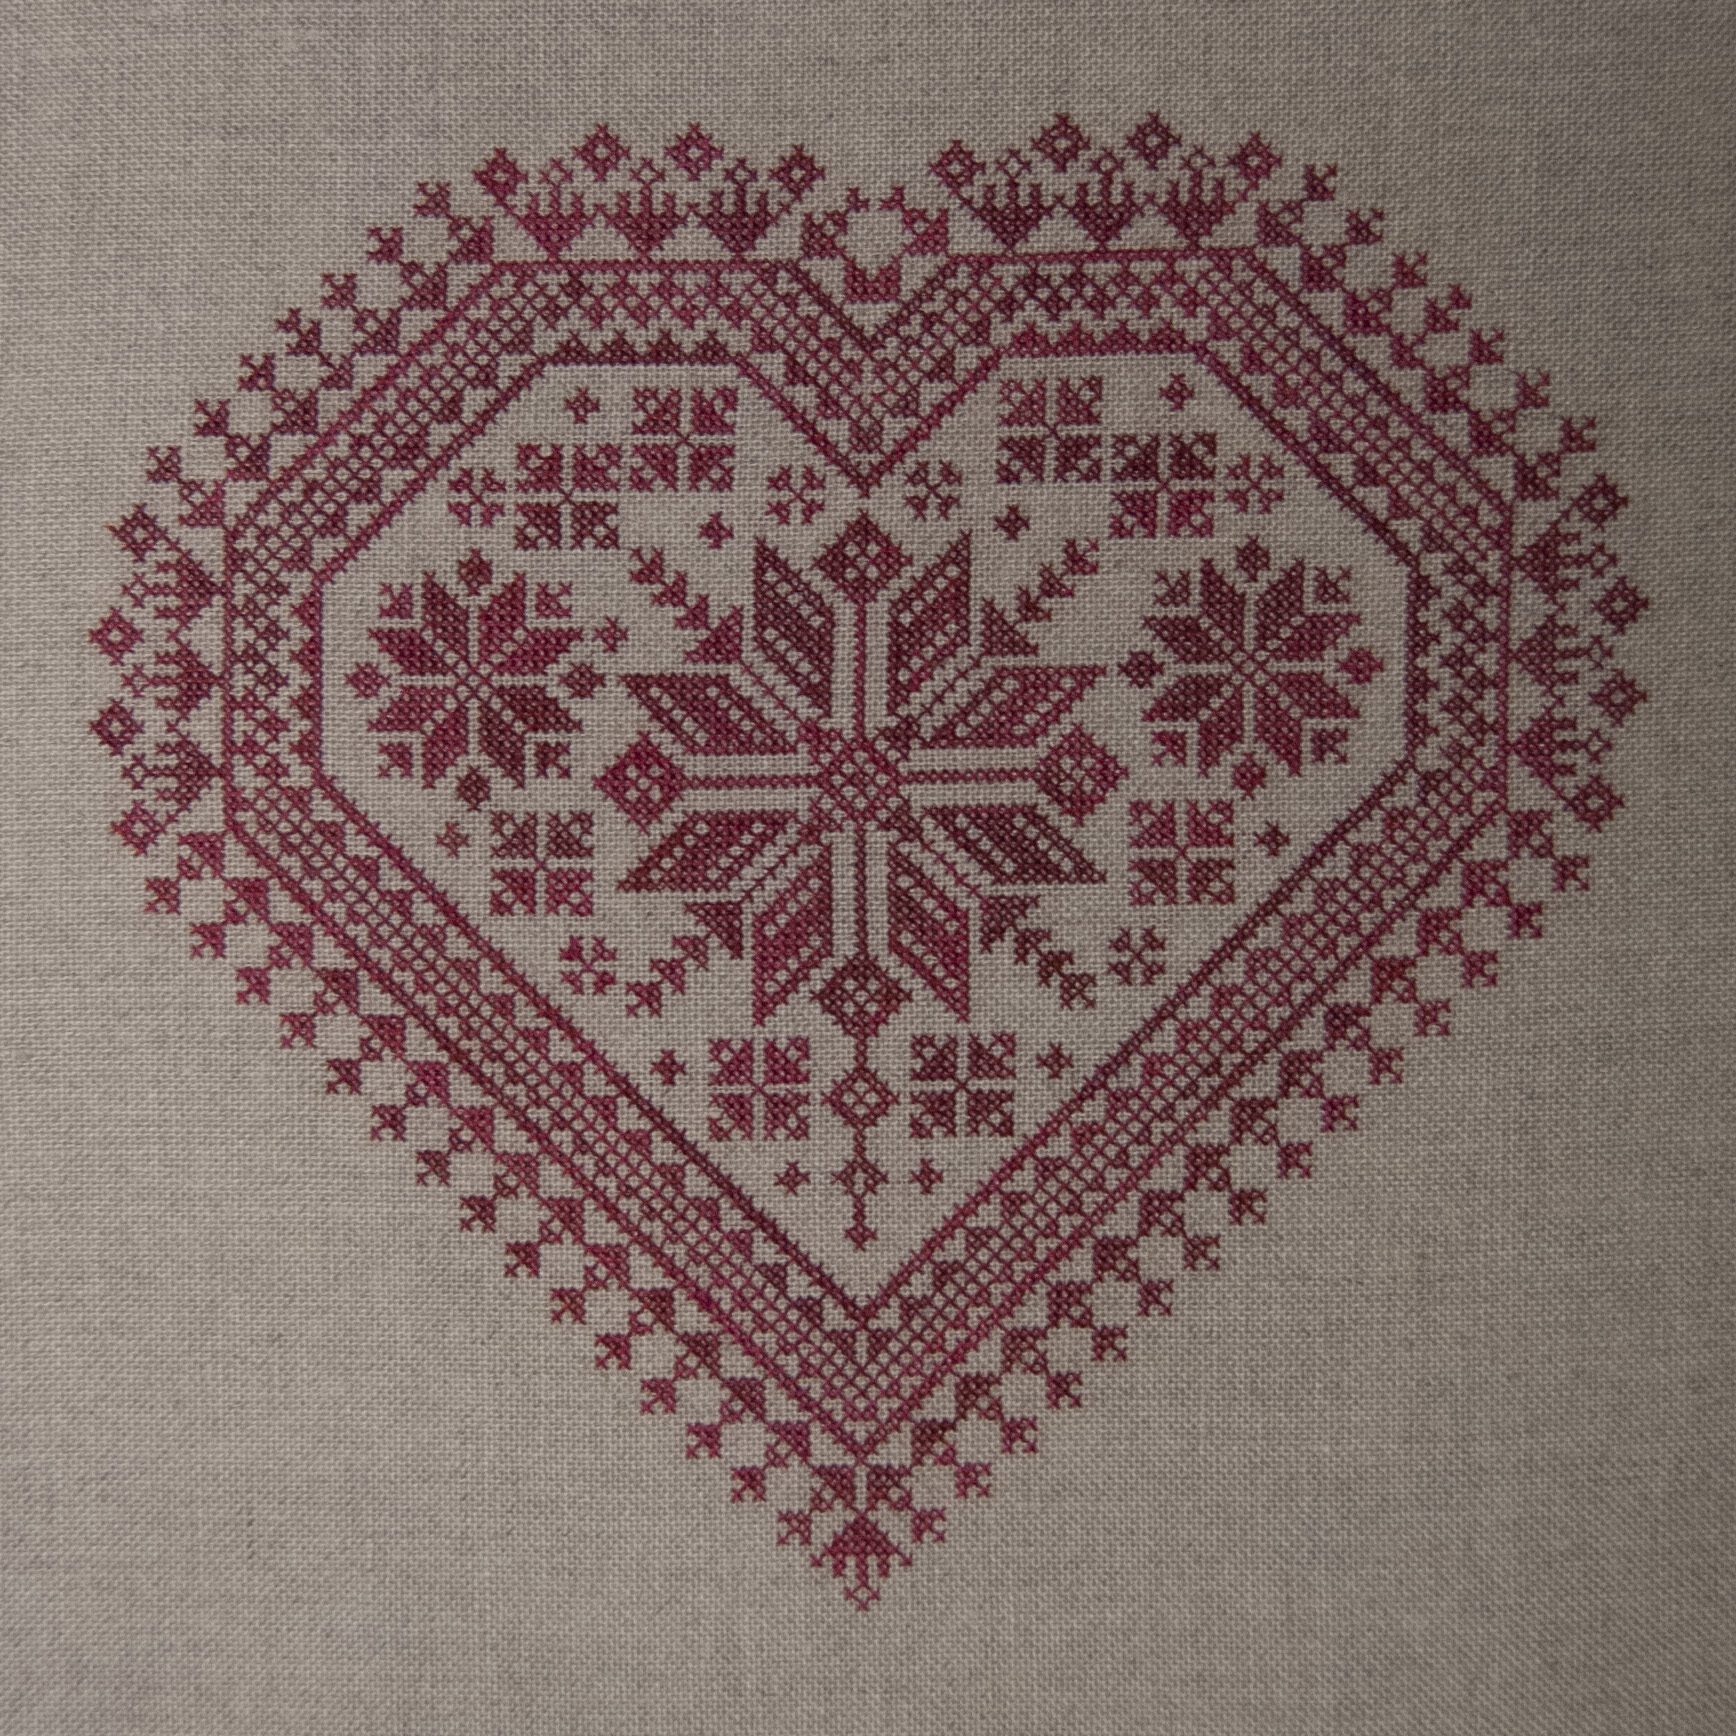 Scandinavian Embroidery Patterns The Nordic Heart Modern Folk Embroidery